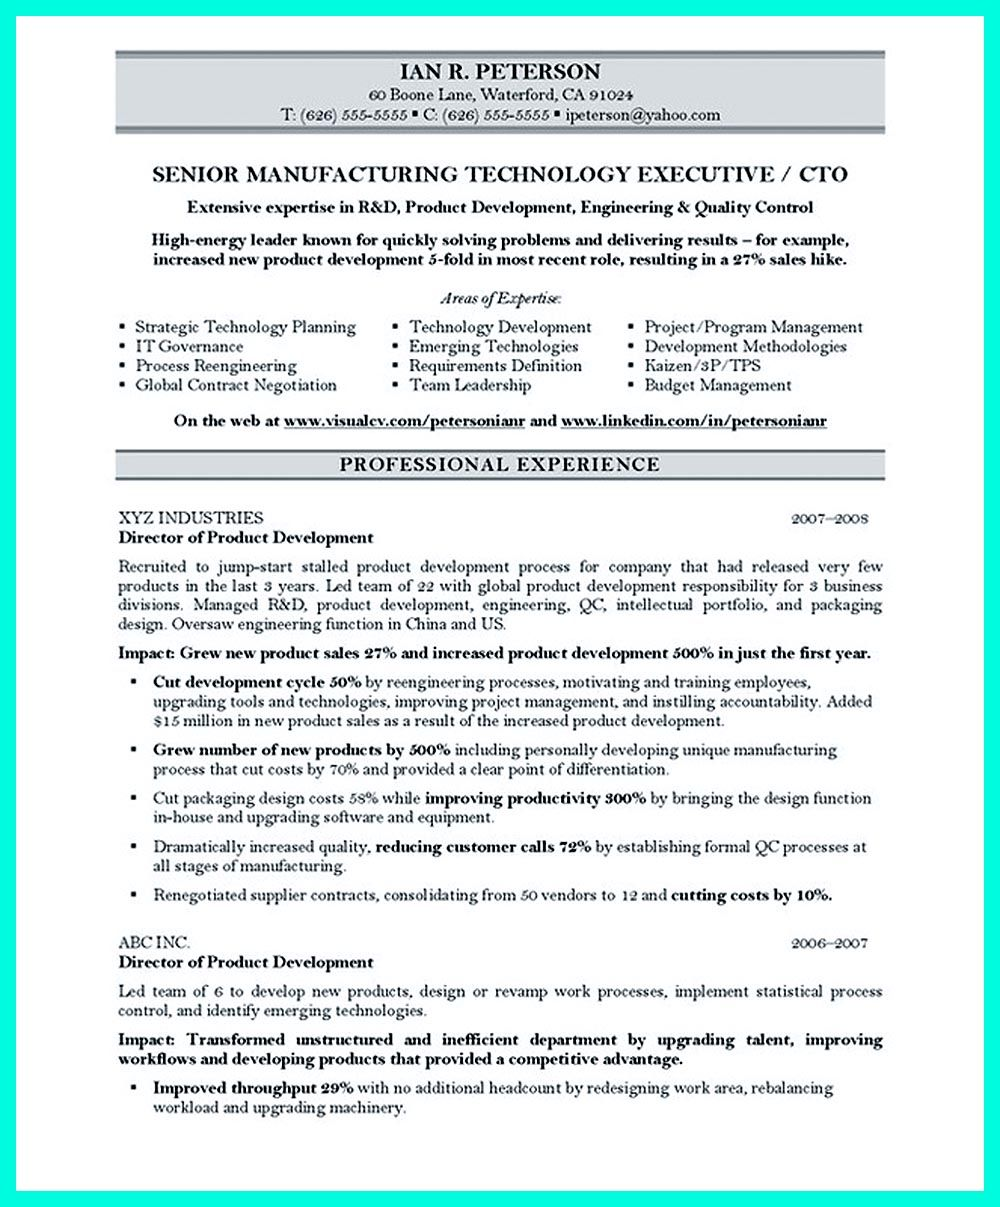 cto resume or chief technical officer resume can be considered as resume for senior level